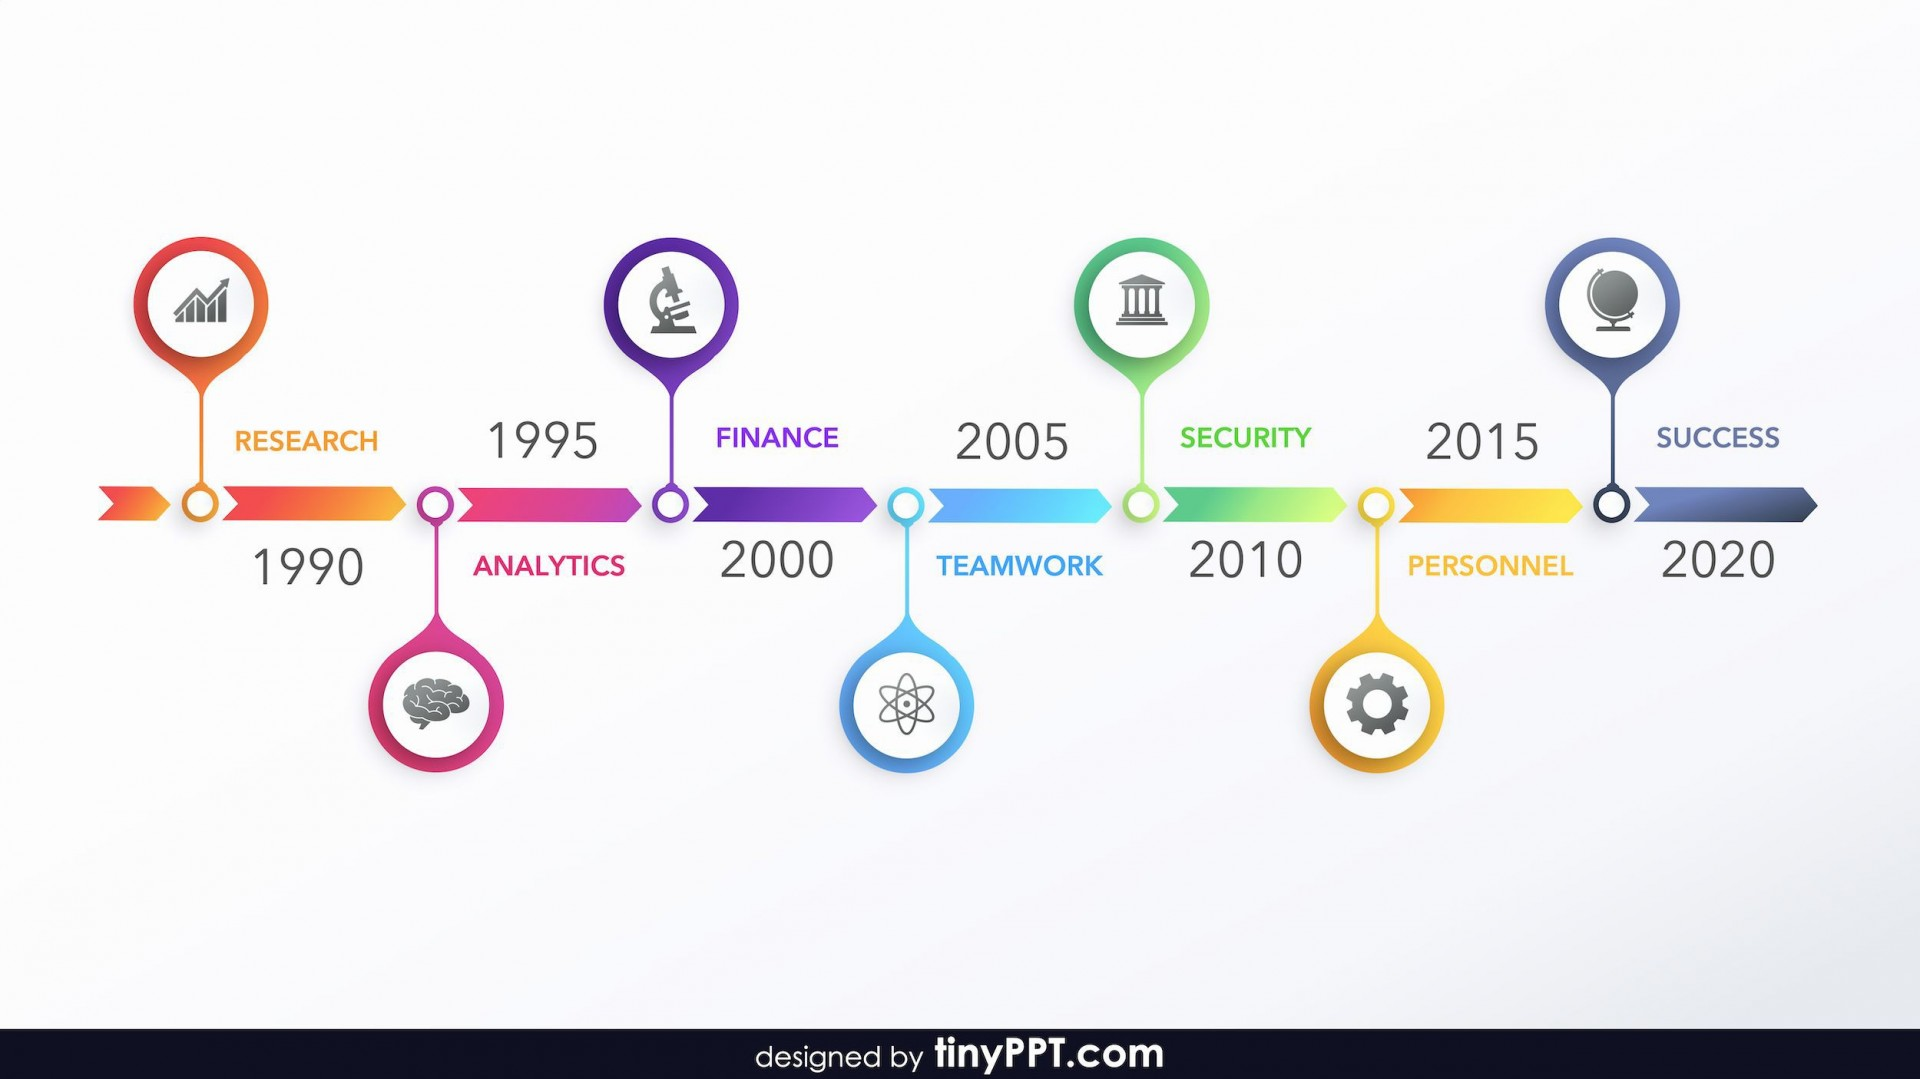 000 Fantastic Timeline Powerpoint Template Download Free High Def  Project Animated1920